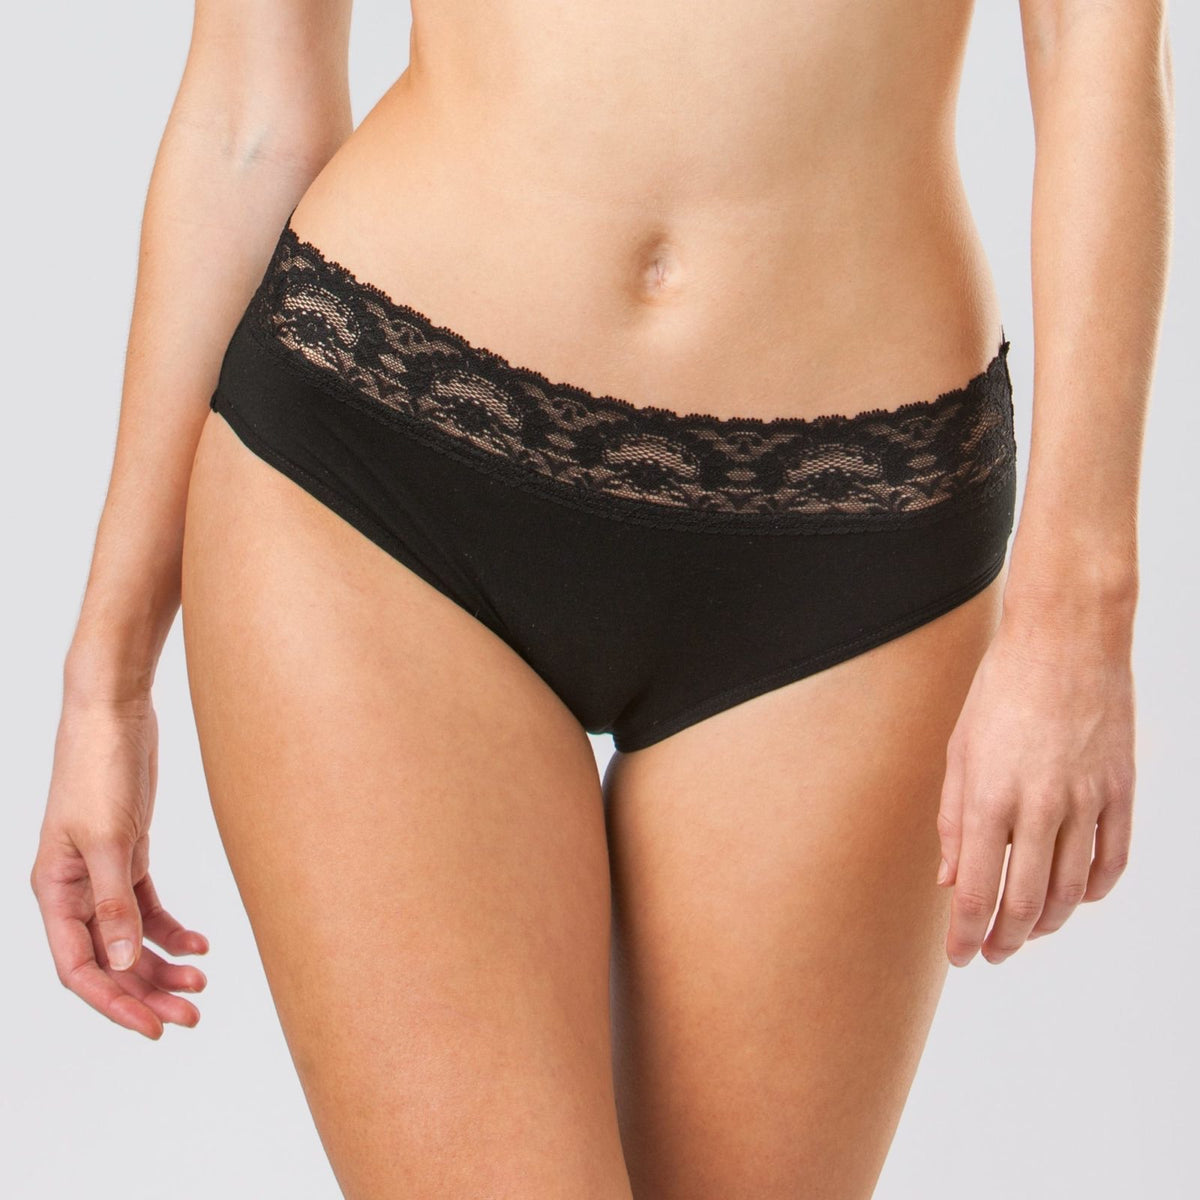 Sensual Hi-Waist Bikini - LIGHT to MODERATE absorbency